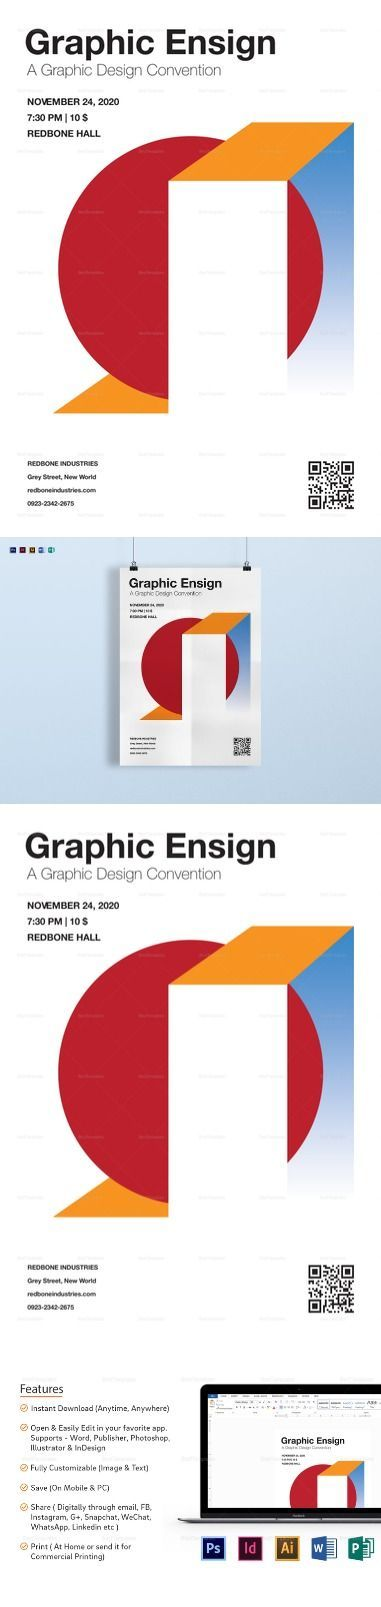 a4 graphic ensign poster template 21 formats included illustrator